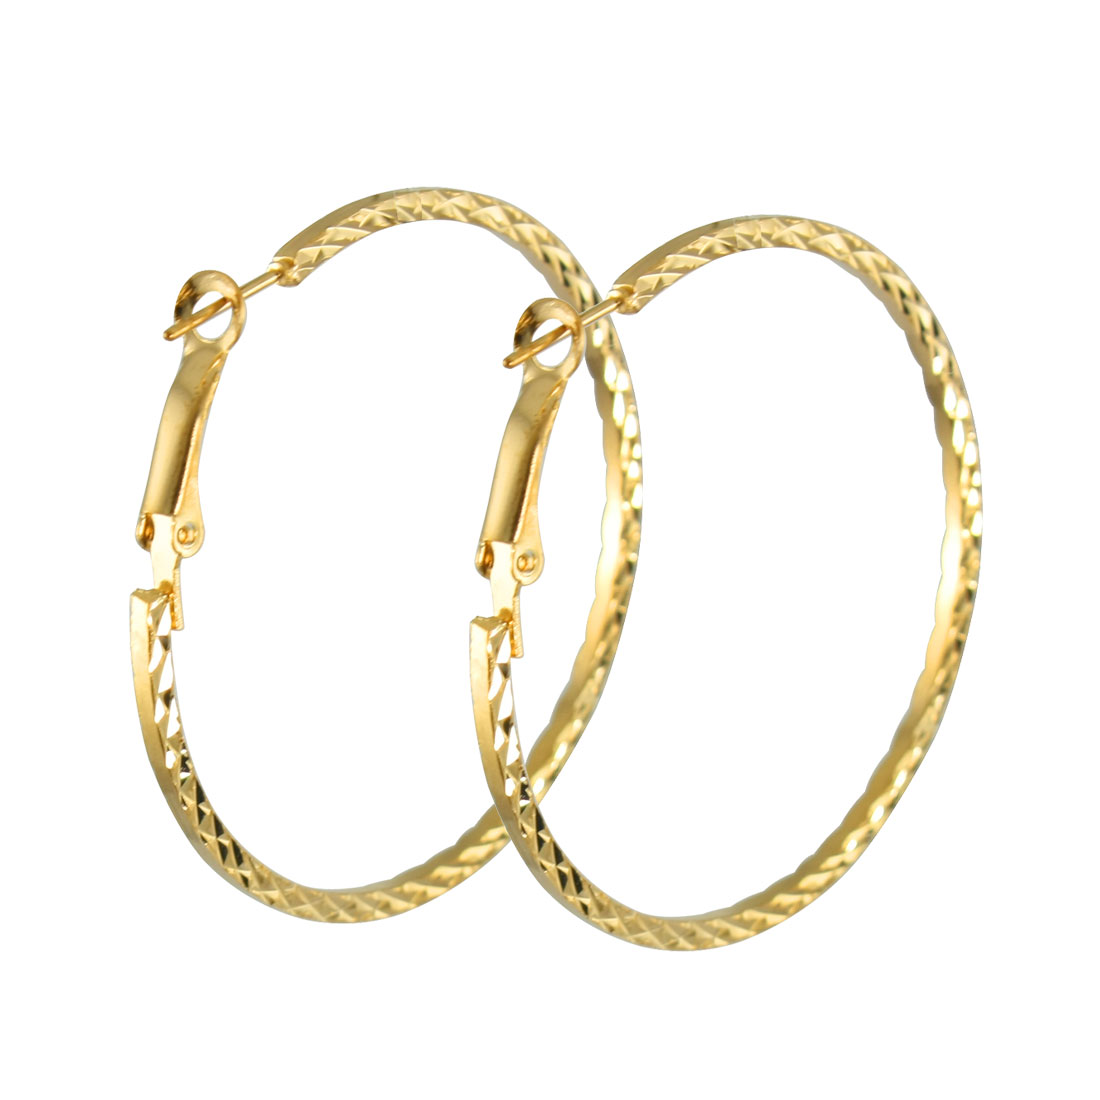 Ladies Twisted Gold Tone Metal Spring Hoop Earrings Eardrop Pair